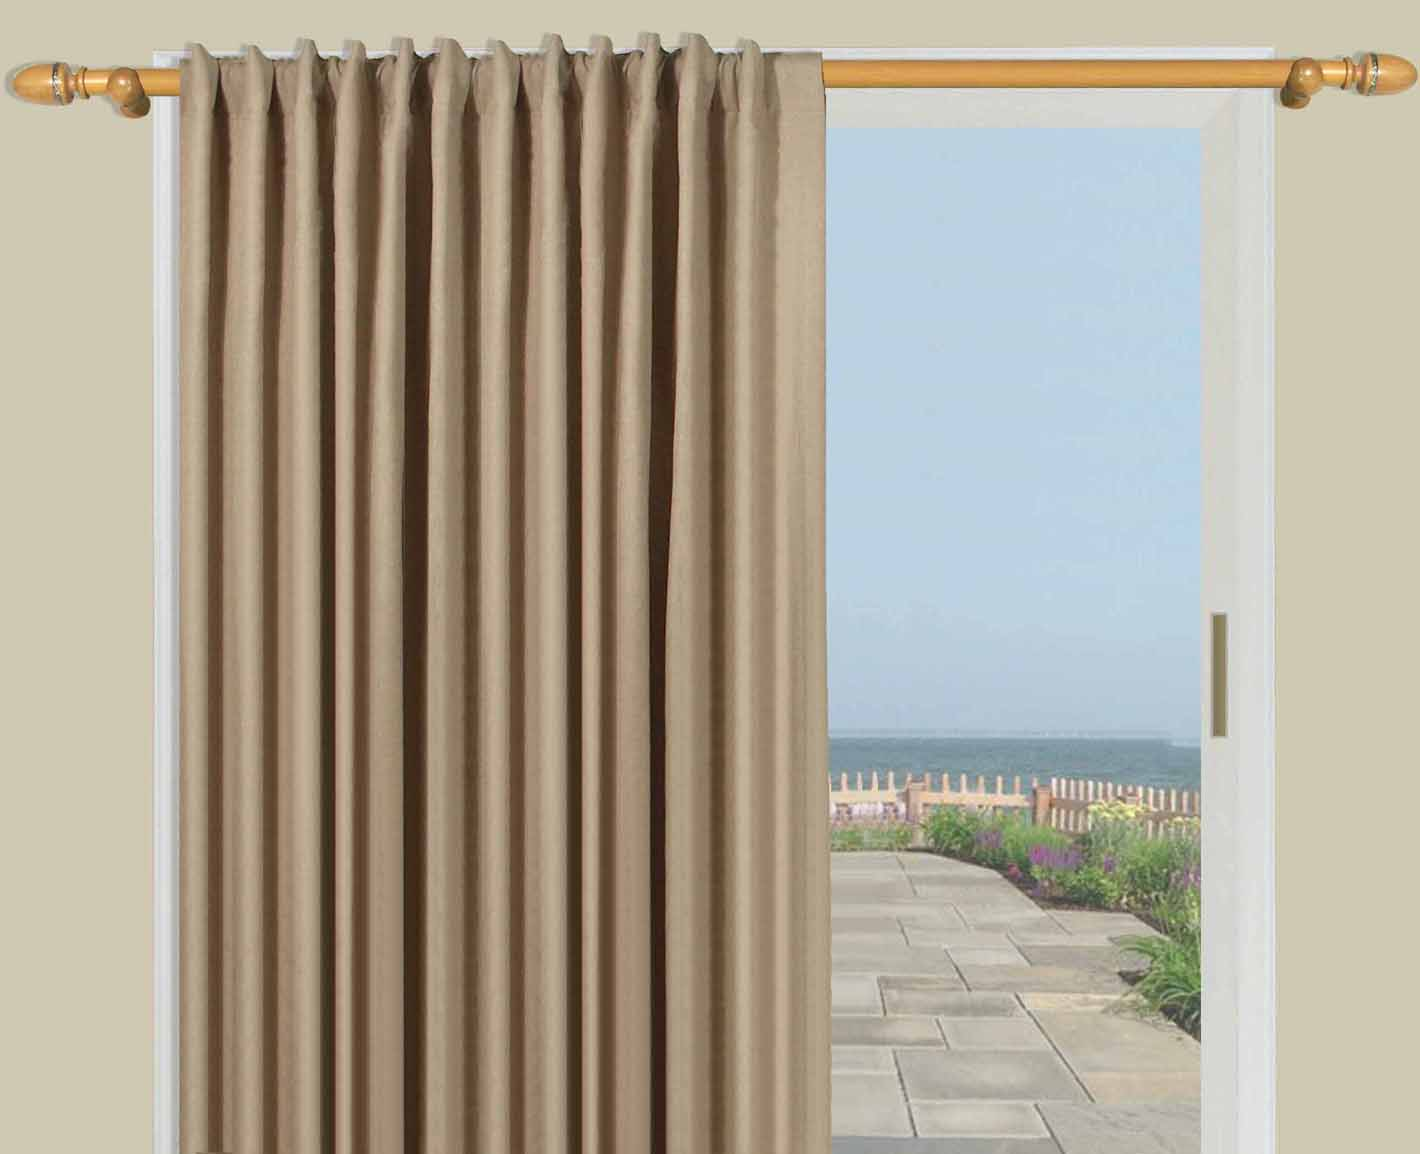 Insulated Patio Door Drapes | Insulated Curtains and Drapes | Thermal Insulated Curtains